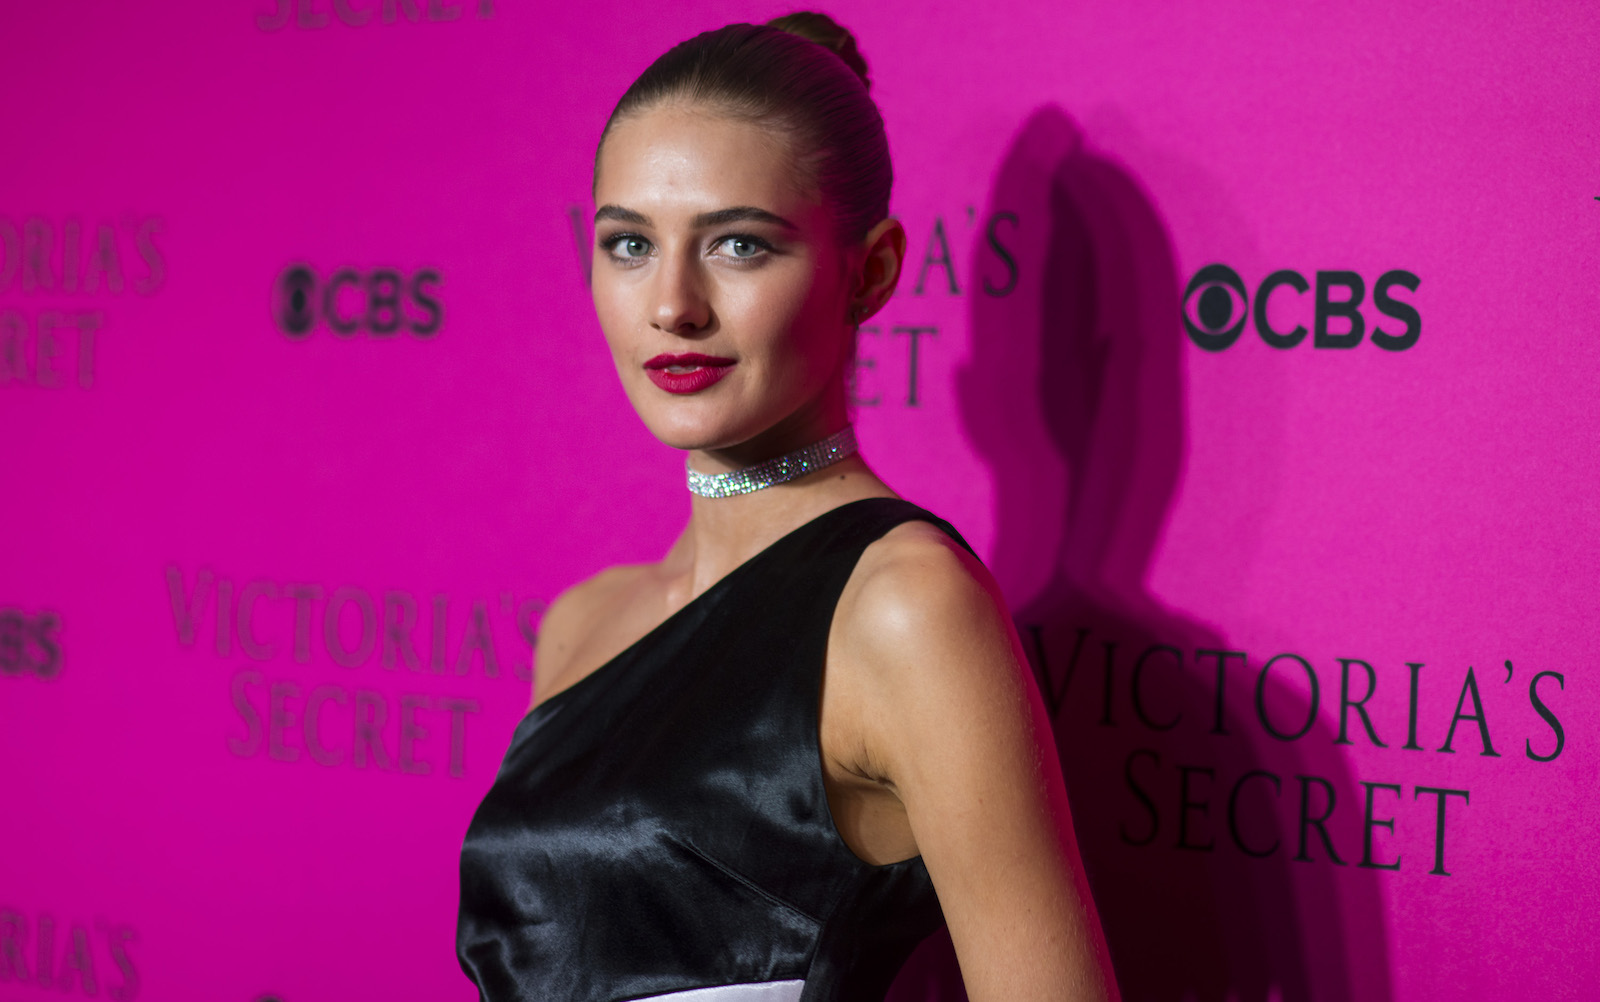 Victoria's Secret model Sanne Vloet poses on the red carpet